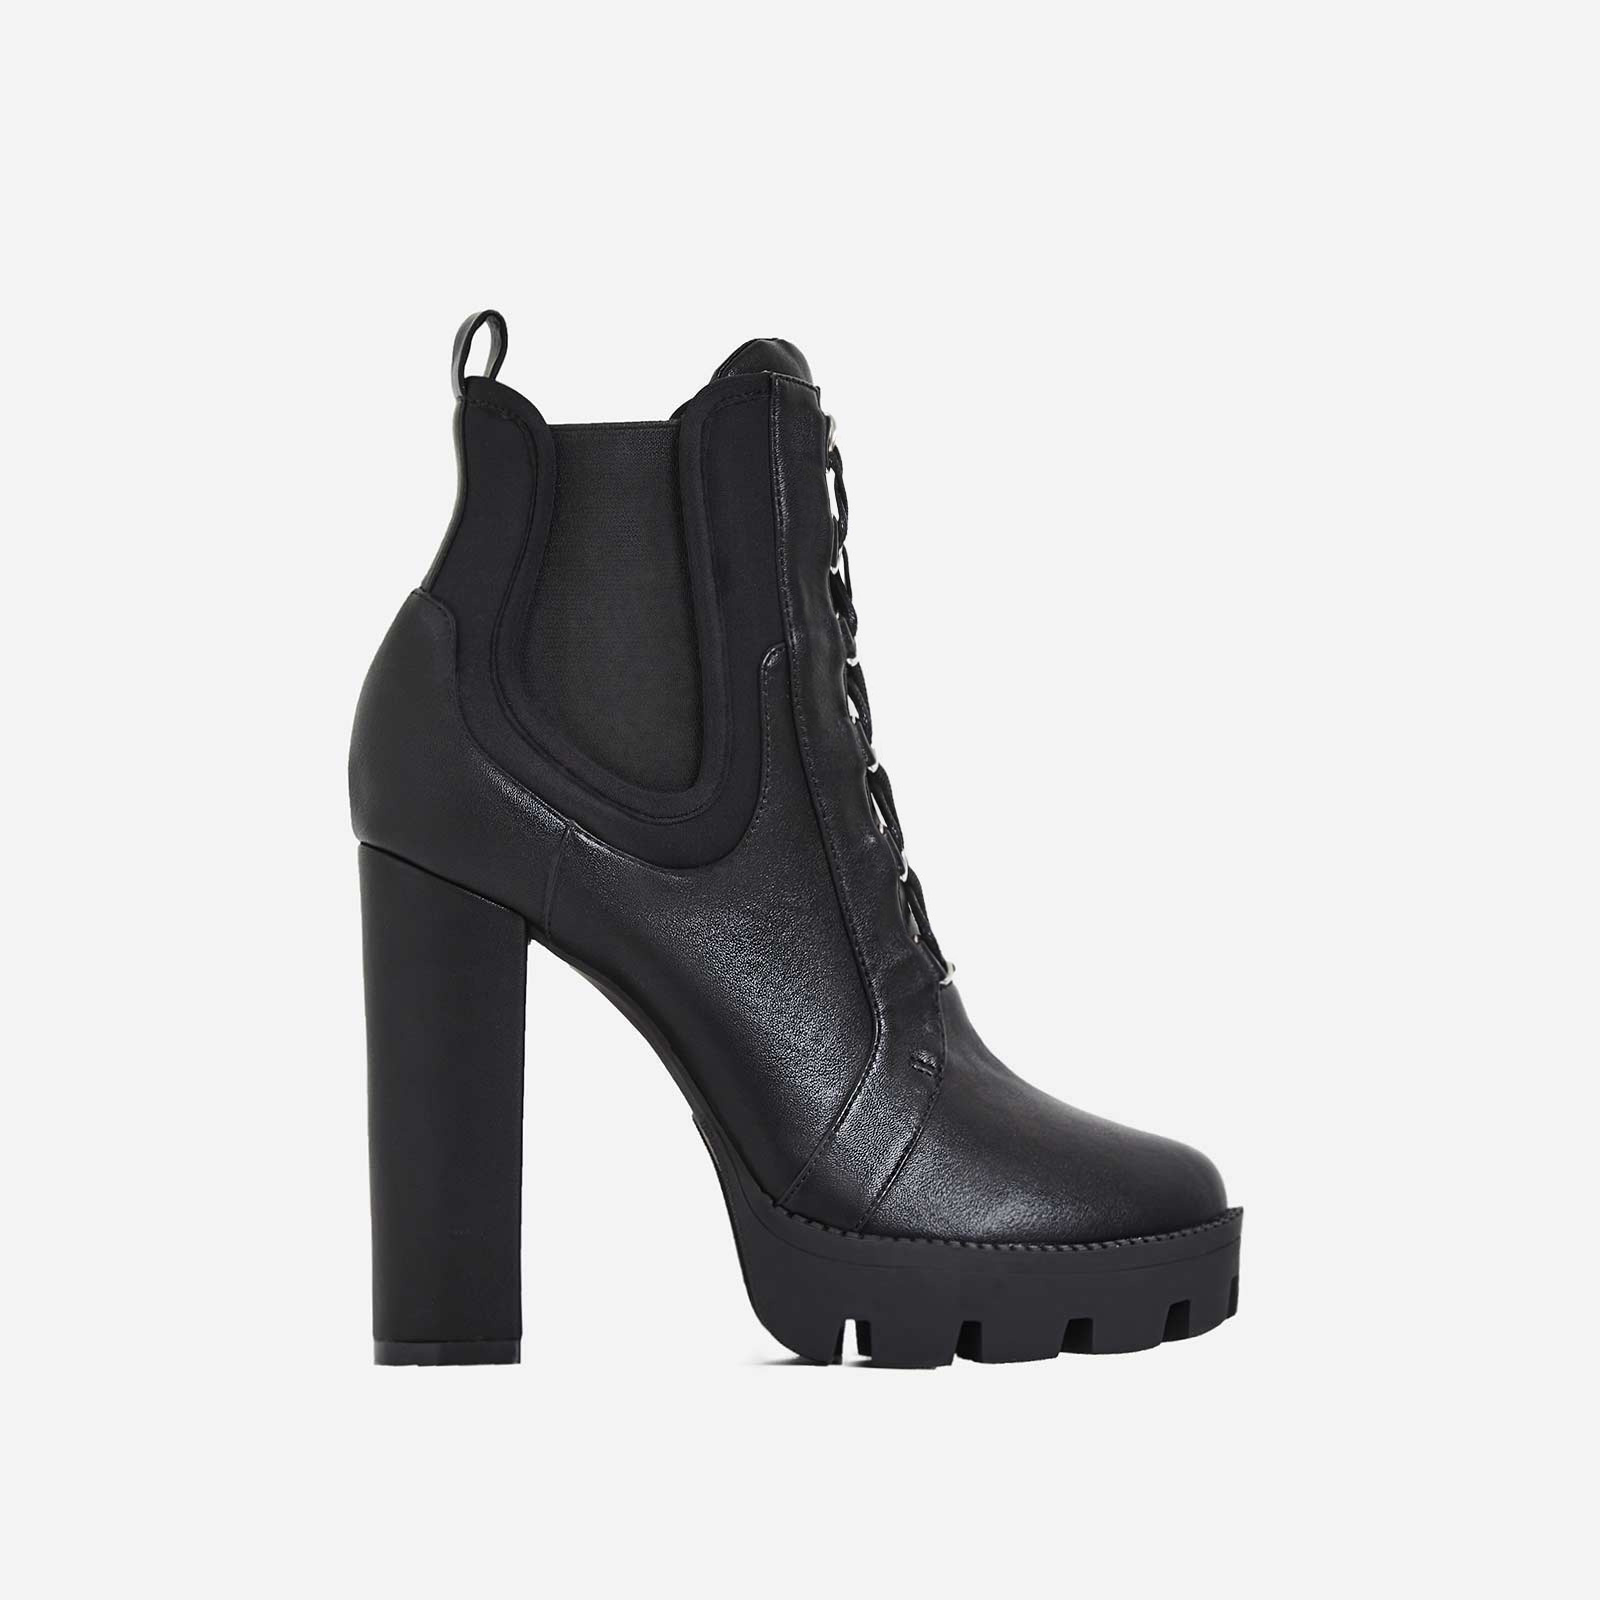 Miya Black Lycra Trim Lace Up Platform Ankle Boot In Black Faux Leather